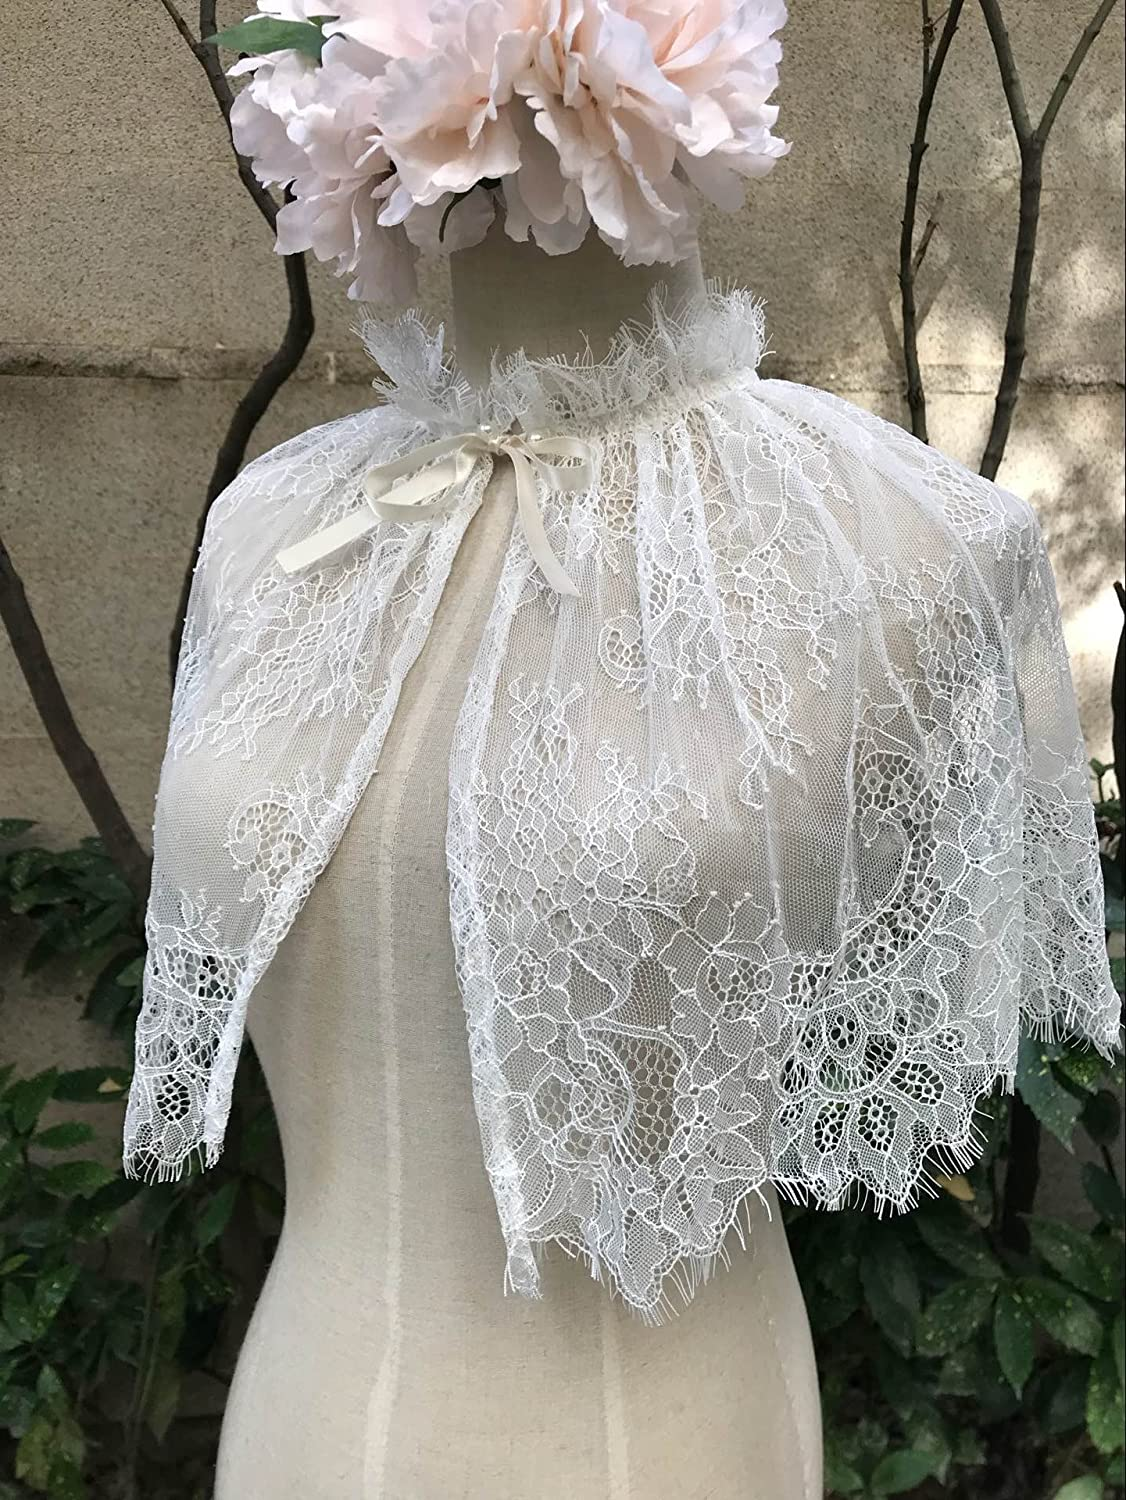 Victorian Capelet, Cape, Cloak, Shawl, Muff YuRong Bridal Lace capelet Tulle Lace Cape Cover Up for Strapless Wedding Dress C01a $14.99 AT vintagedancer.com